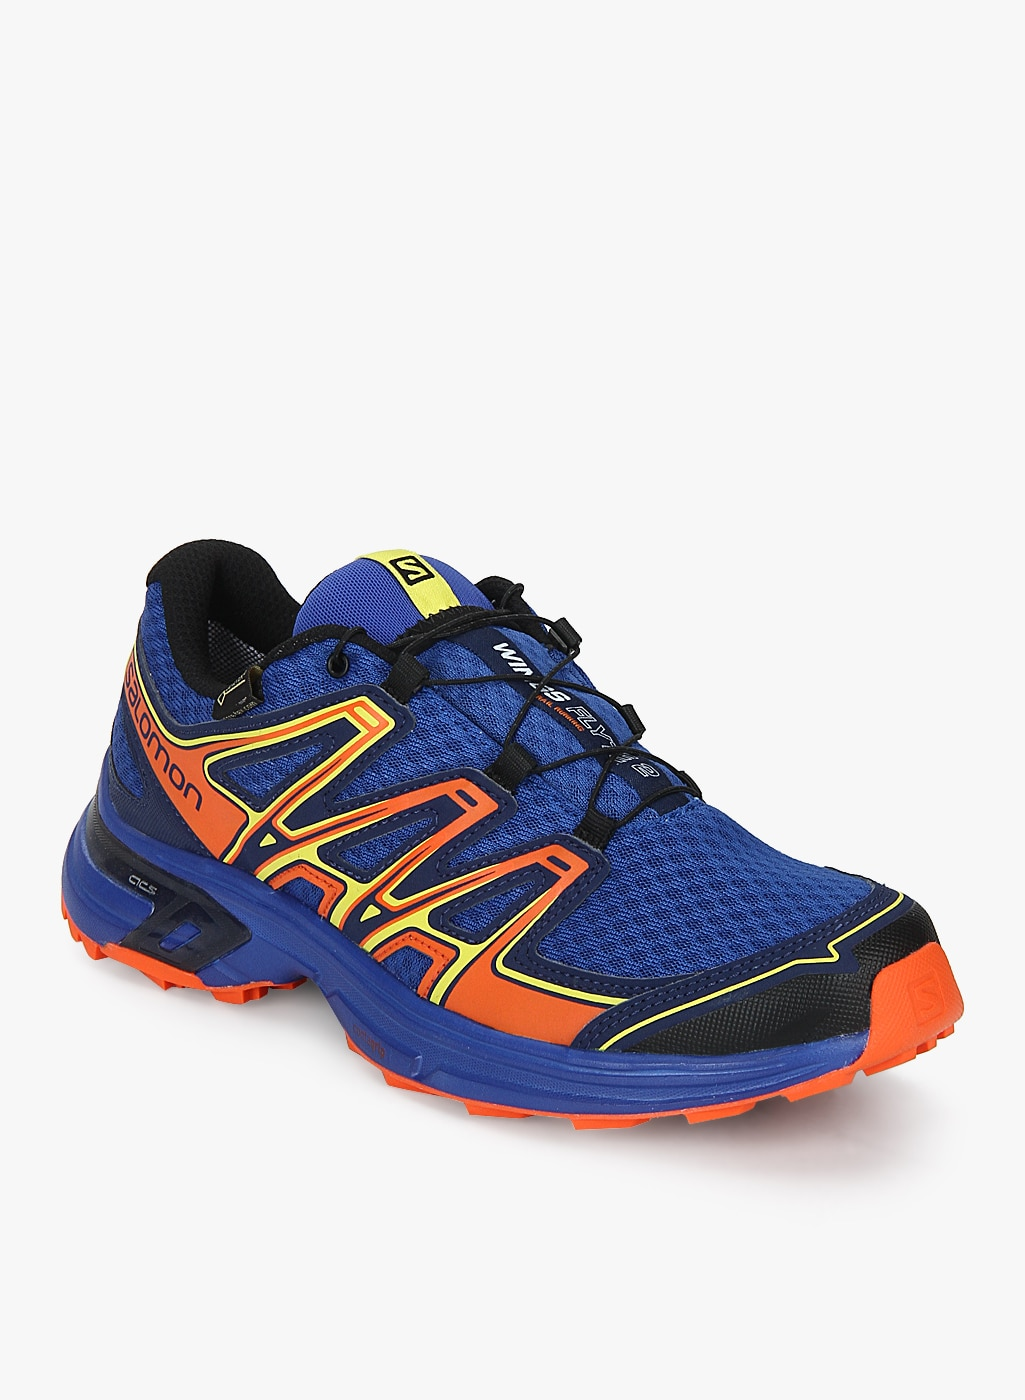 94f405377c92 Men Running Shoes - Buy Men Running Shoes Online in India